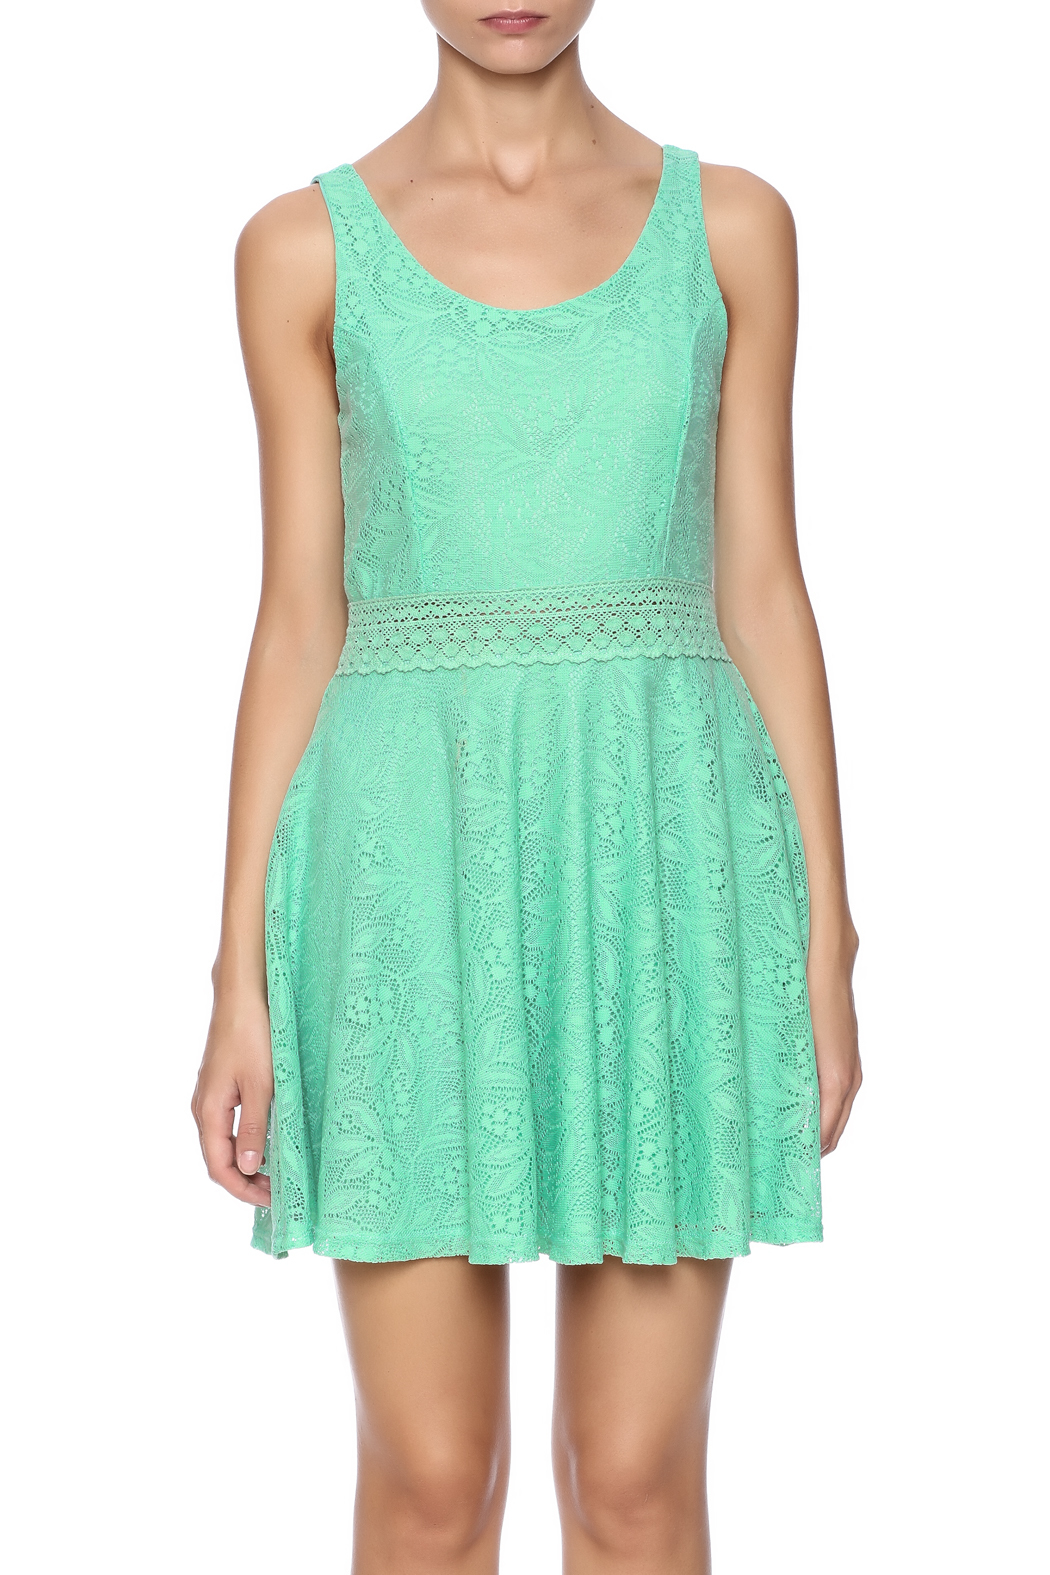 Honey Punch Sweetly Southern Dress - Side Cropped Image